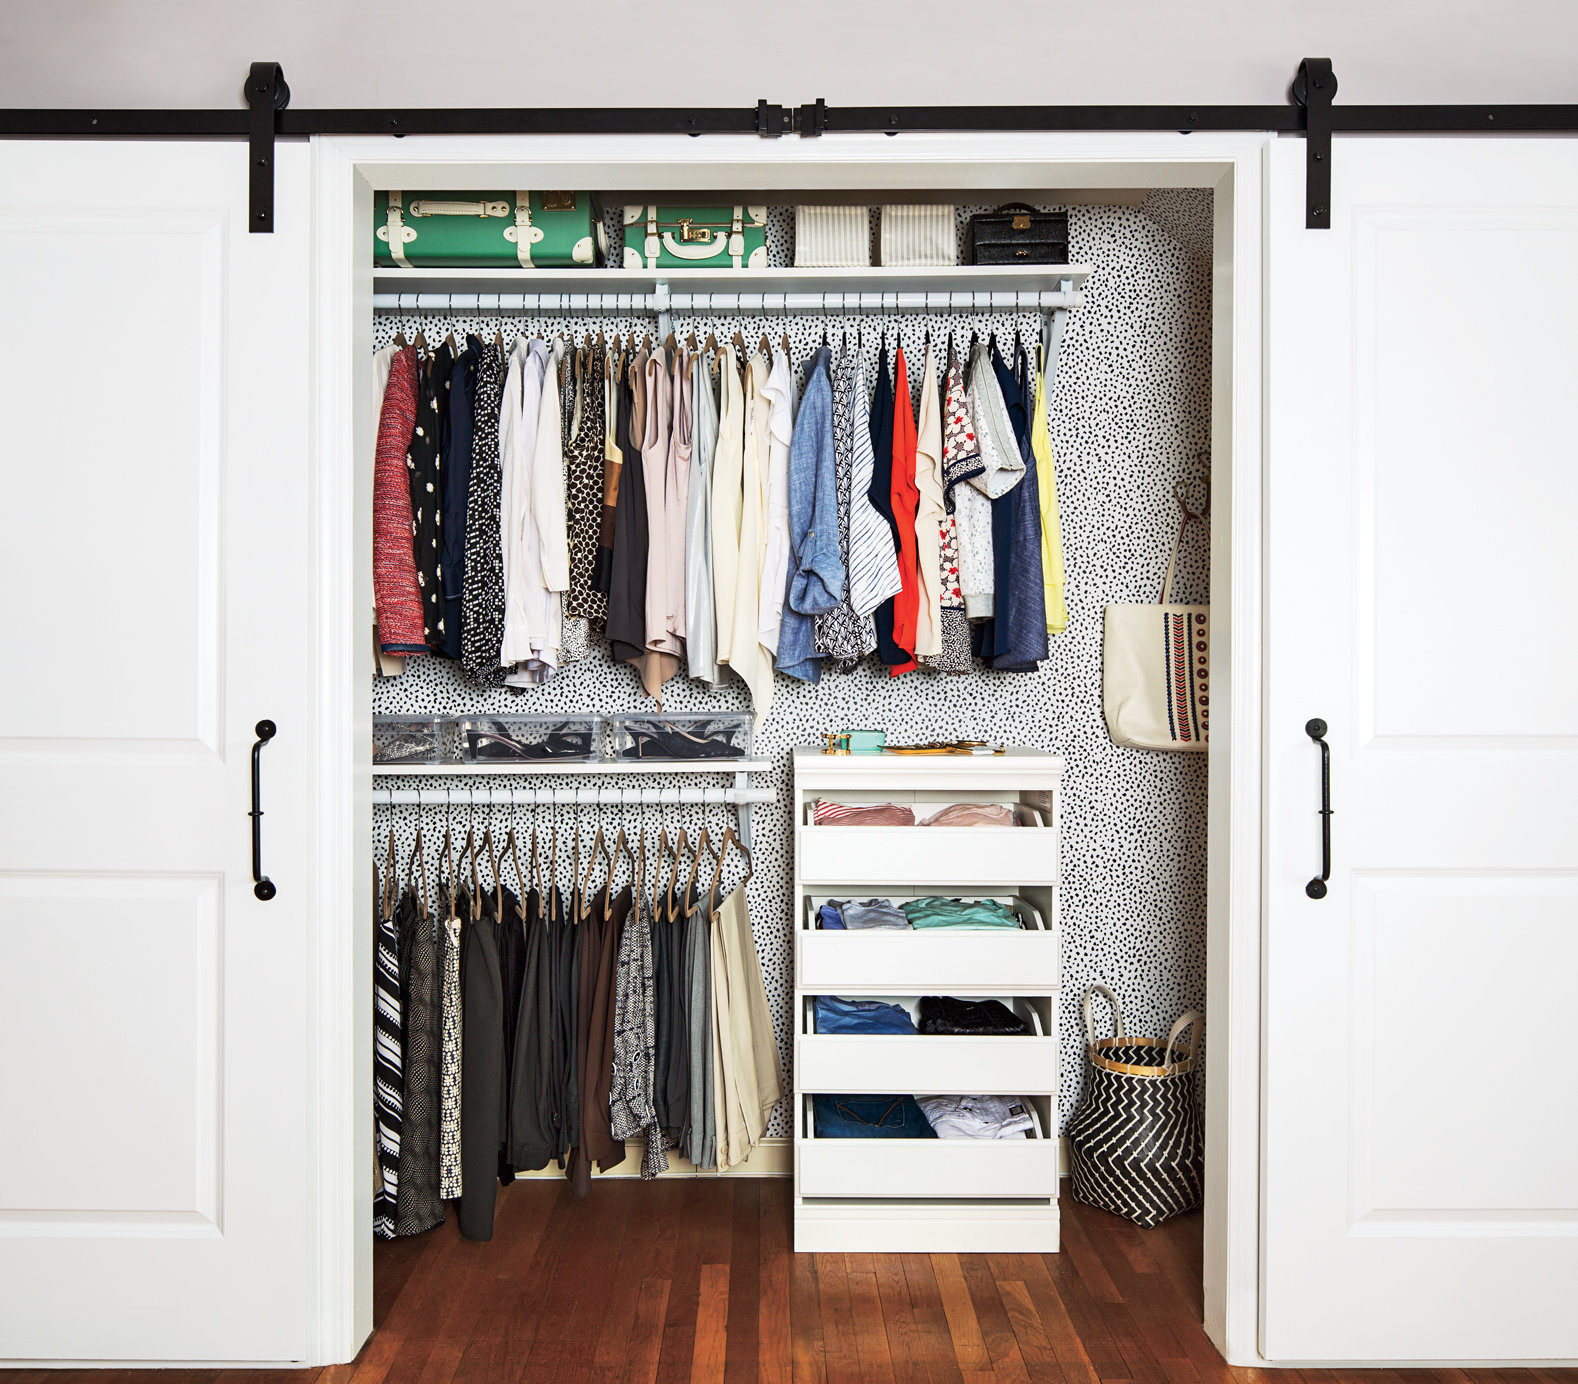 3 Simple Tricks For Keeping Your Closet In Tip-Top Shape